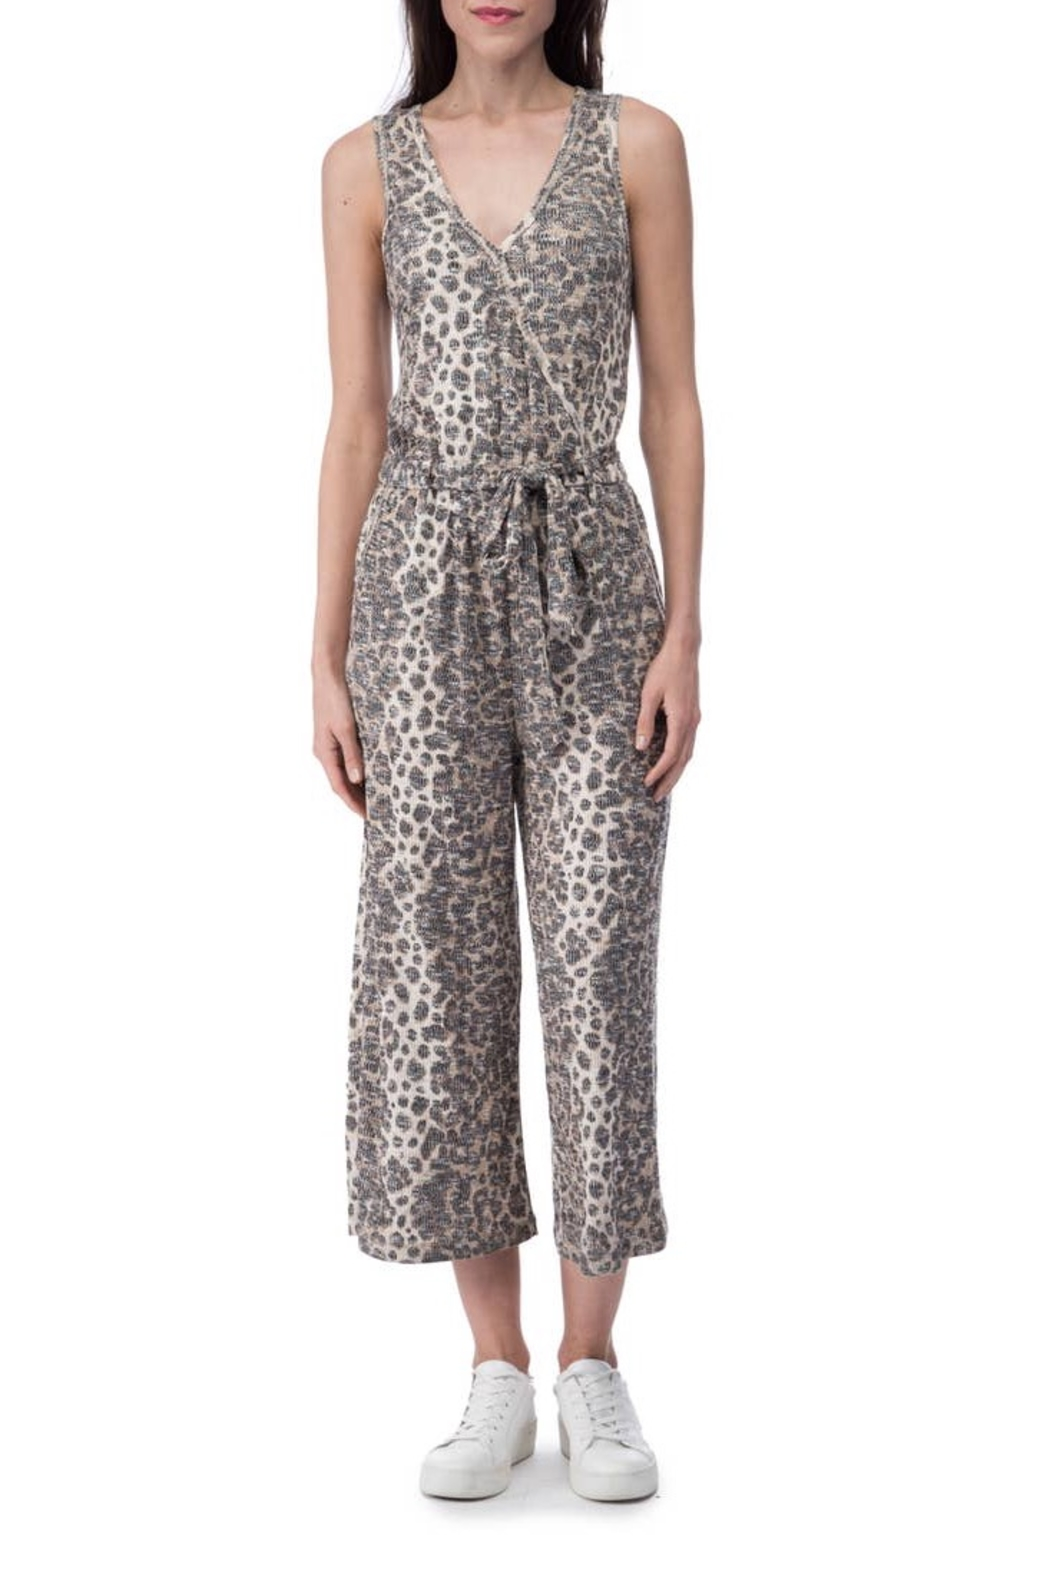 B Collection by Bobeau Cheetah Ribbed Jumpsuit - Main Image